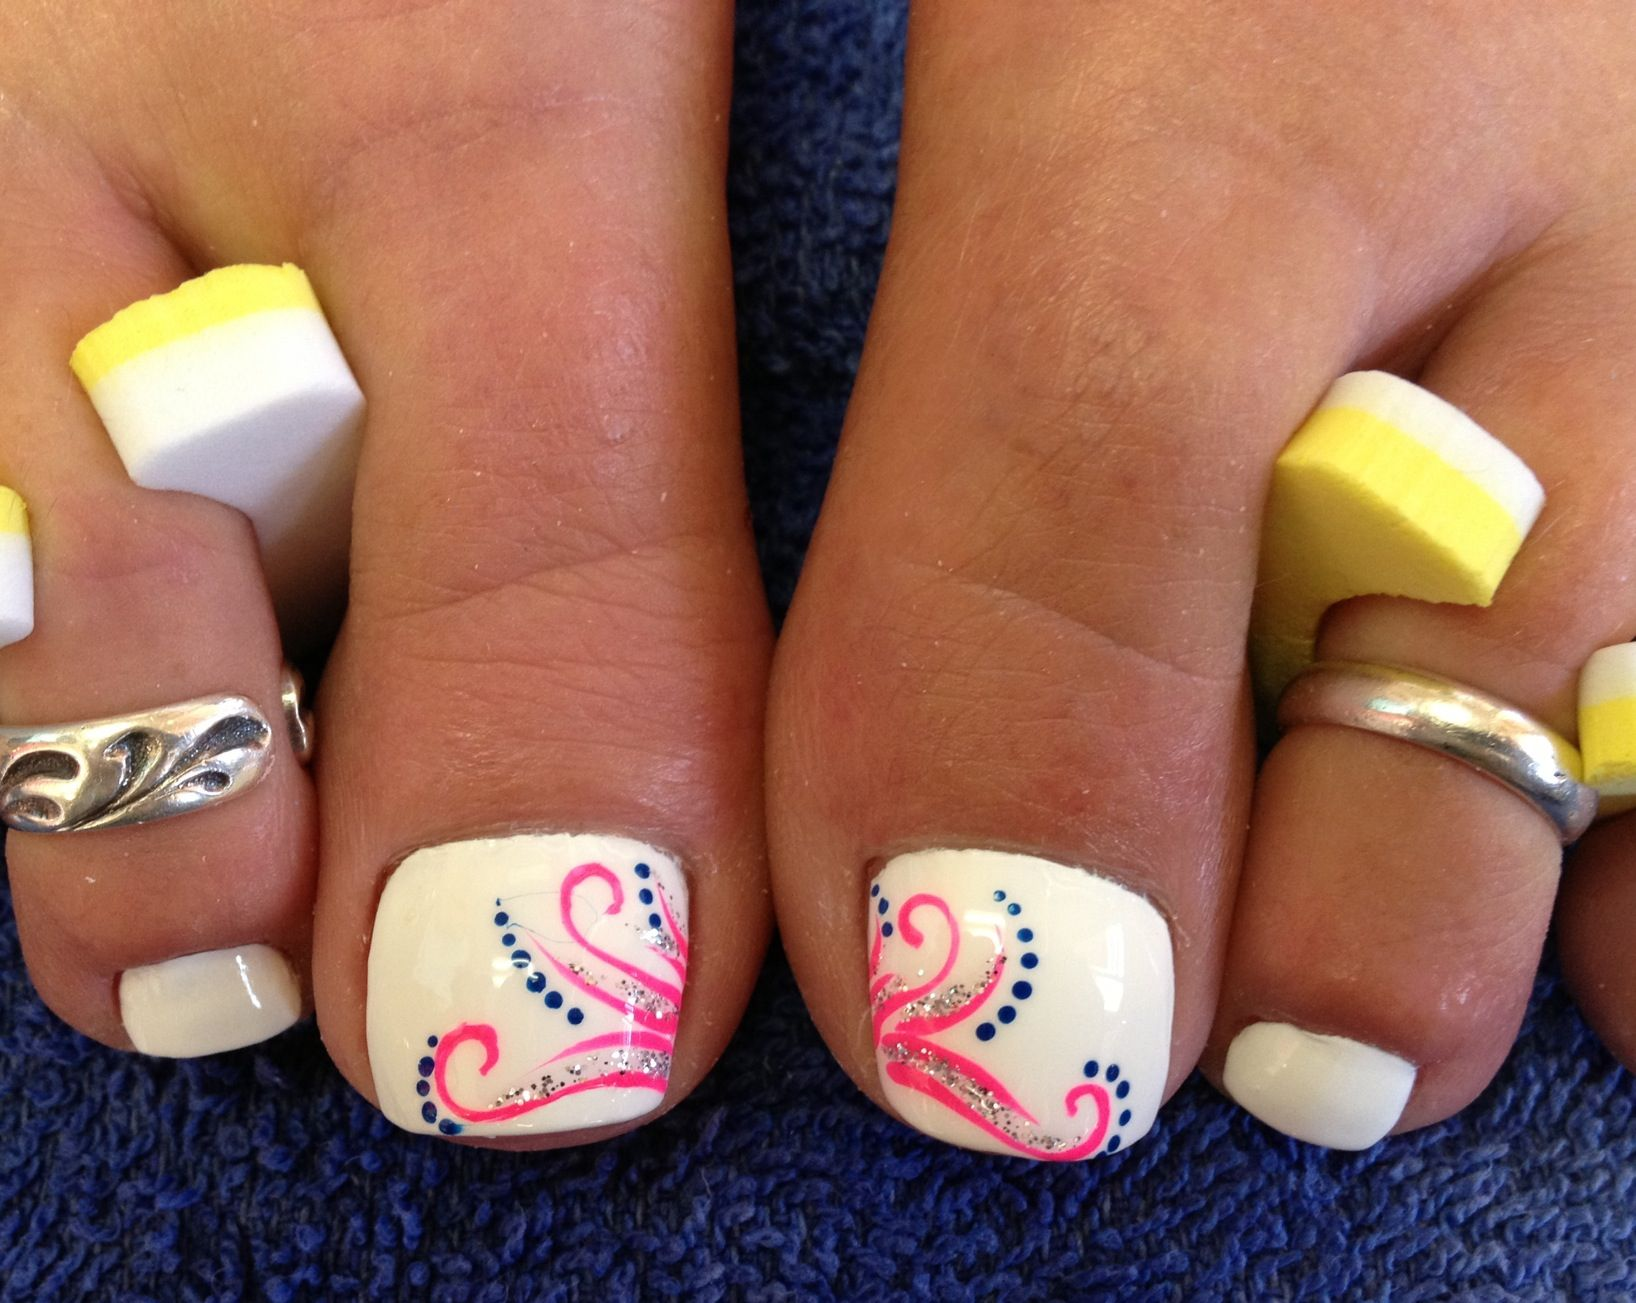 Nail design | My nail designs | Pinterest | Toe nail designs, Pedi ...